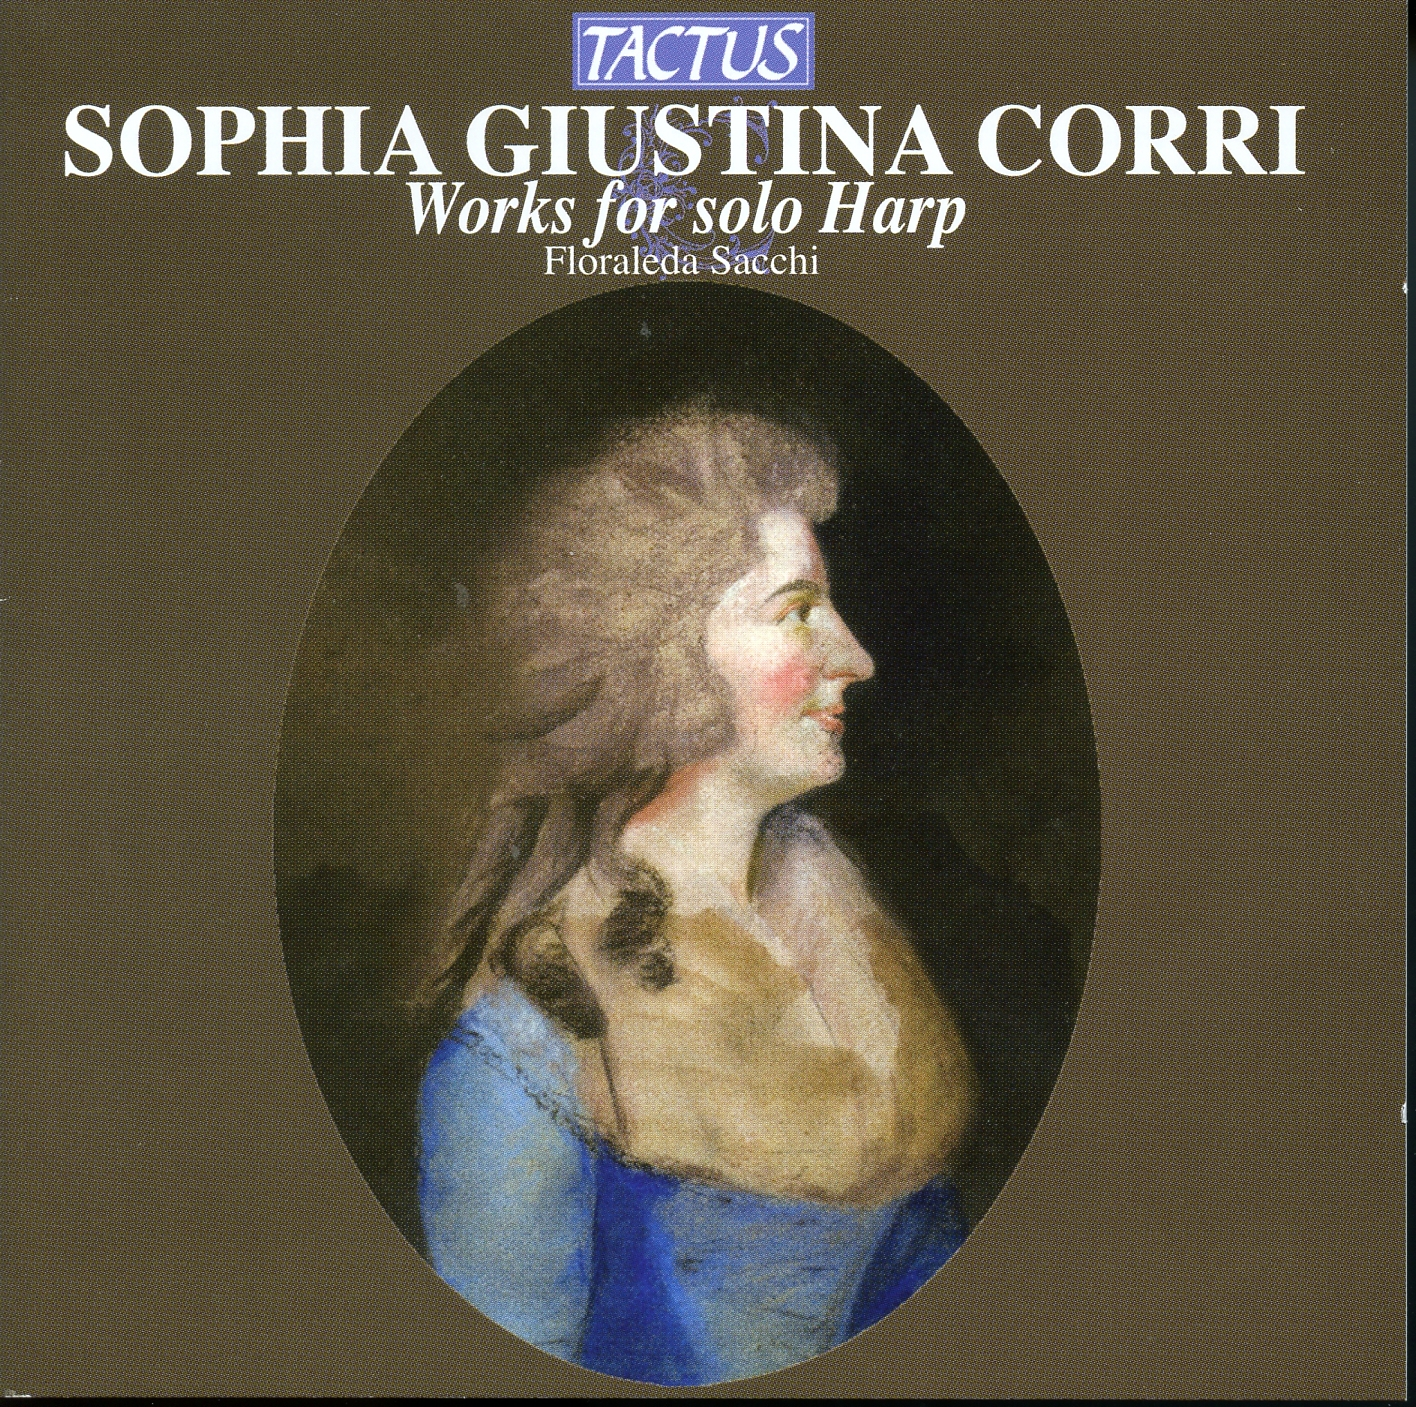 Harp Sonata in E-Flat Major, Op. 2, No. 4, Harp Sonata in E-Flat Major, Op. 2, No. 4: II. Lochaber